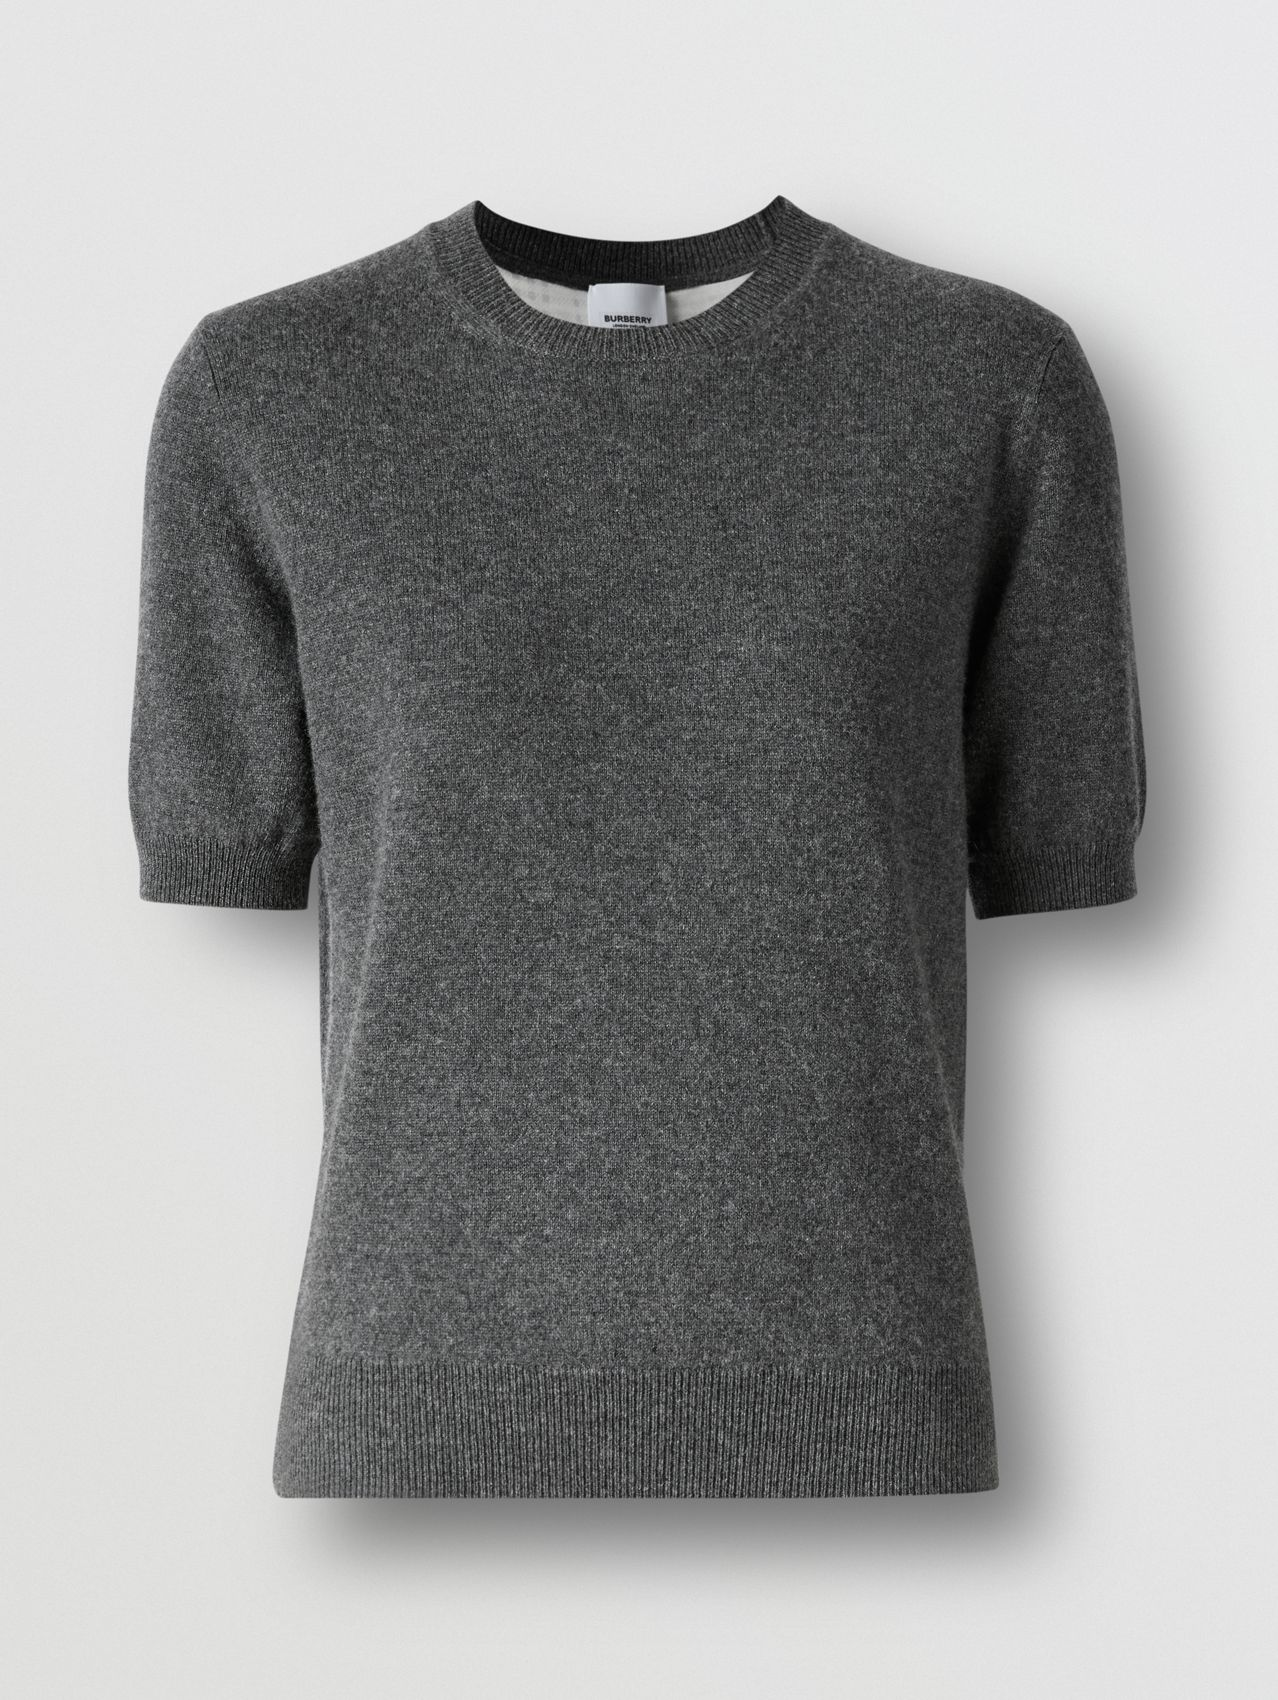 Short-sleeve Cashmere Top in Grey Melange